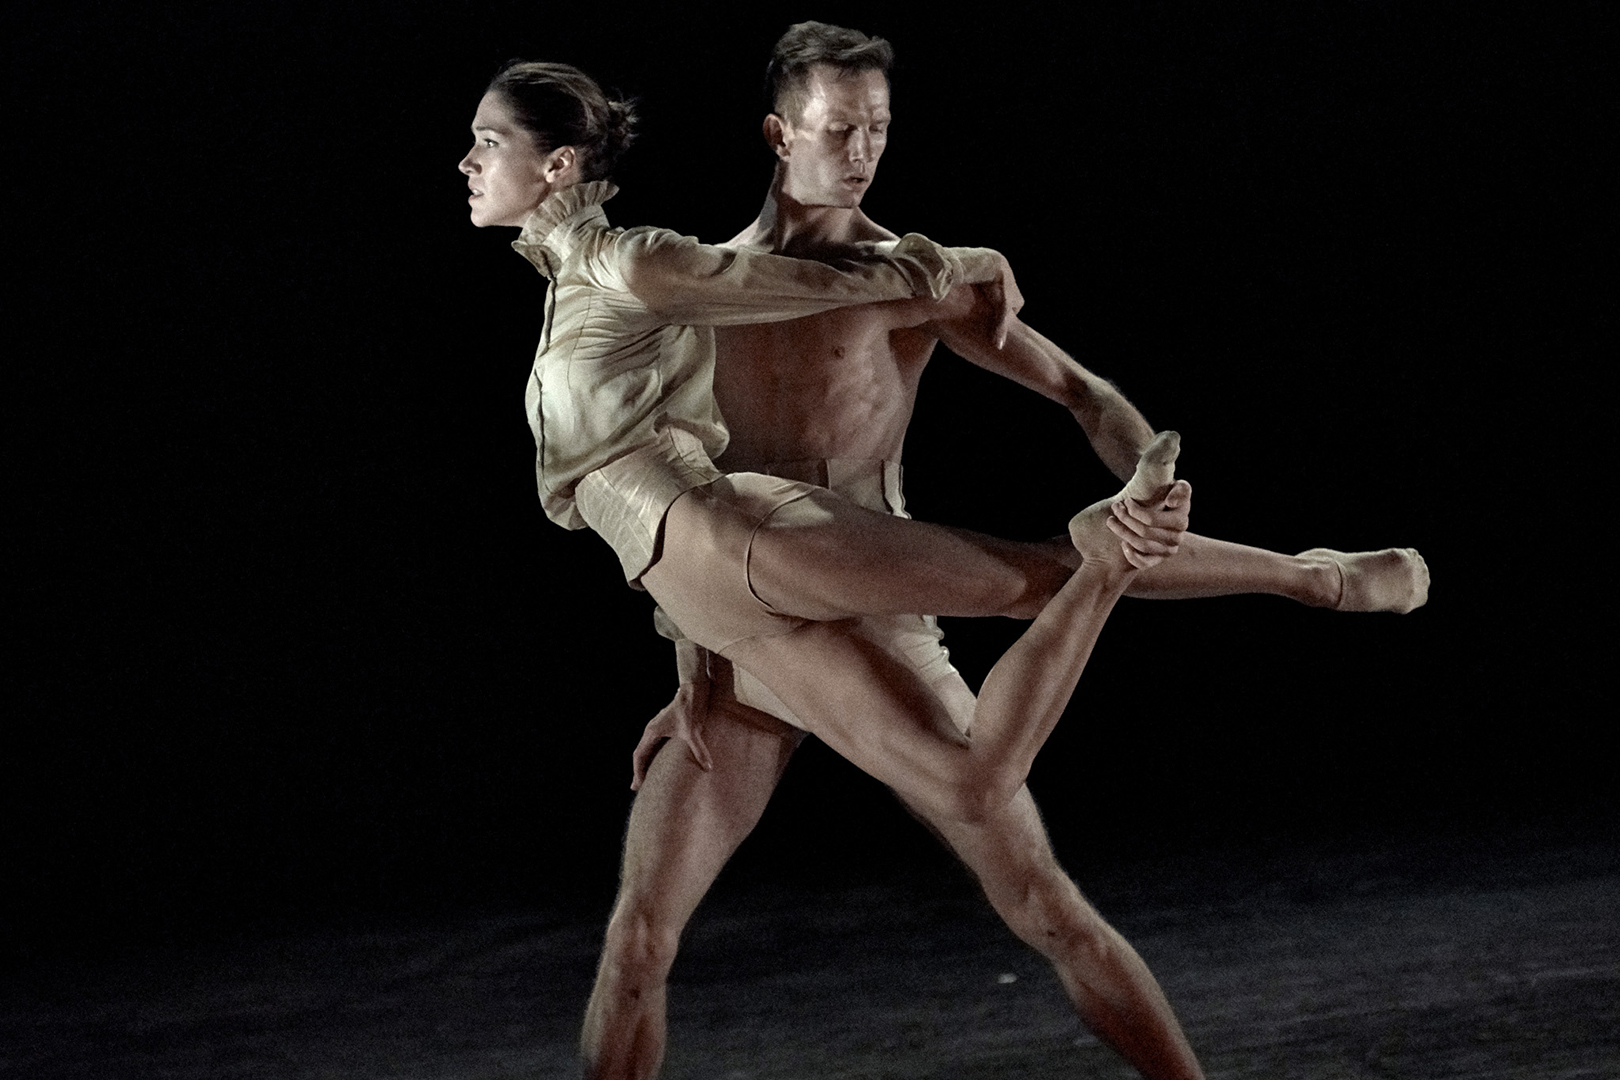 Dancers Dane Holland & Tetyana Martyanova in Spectres, Story of Lonely Souls